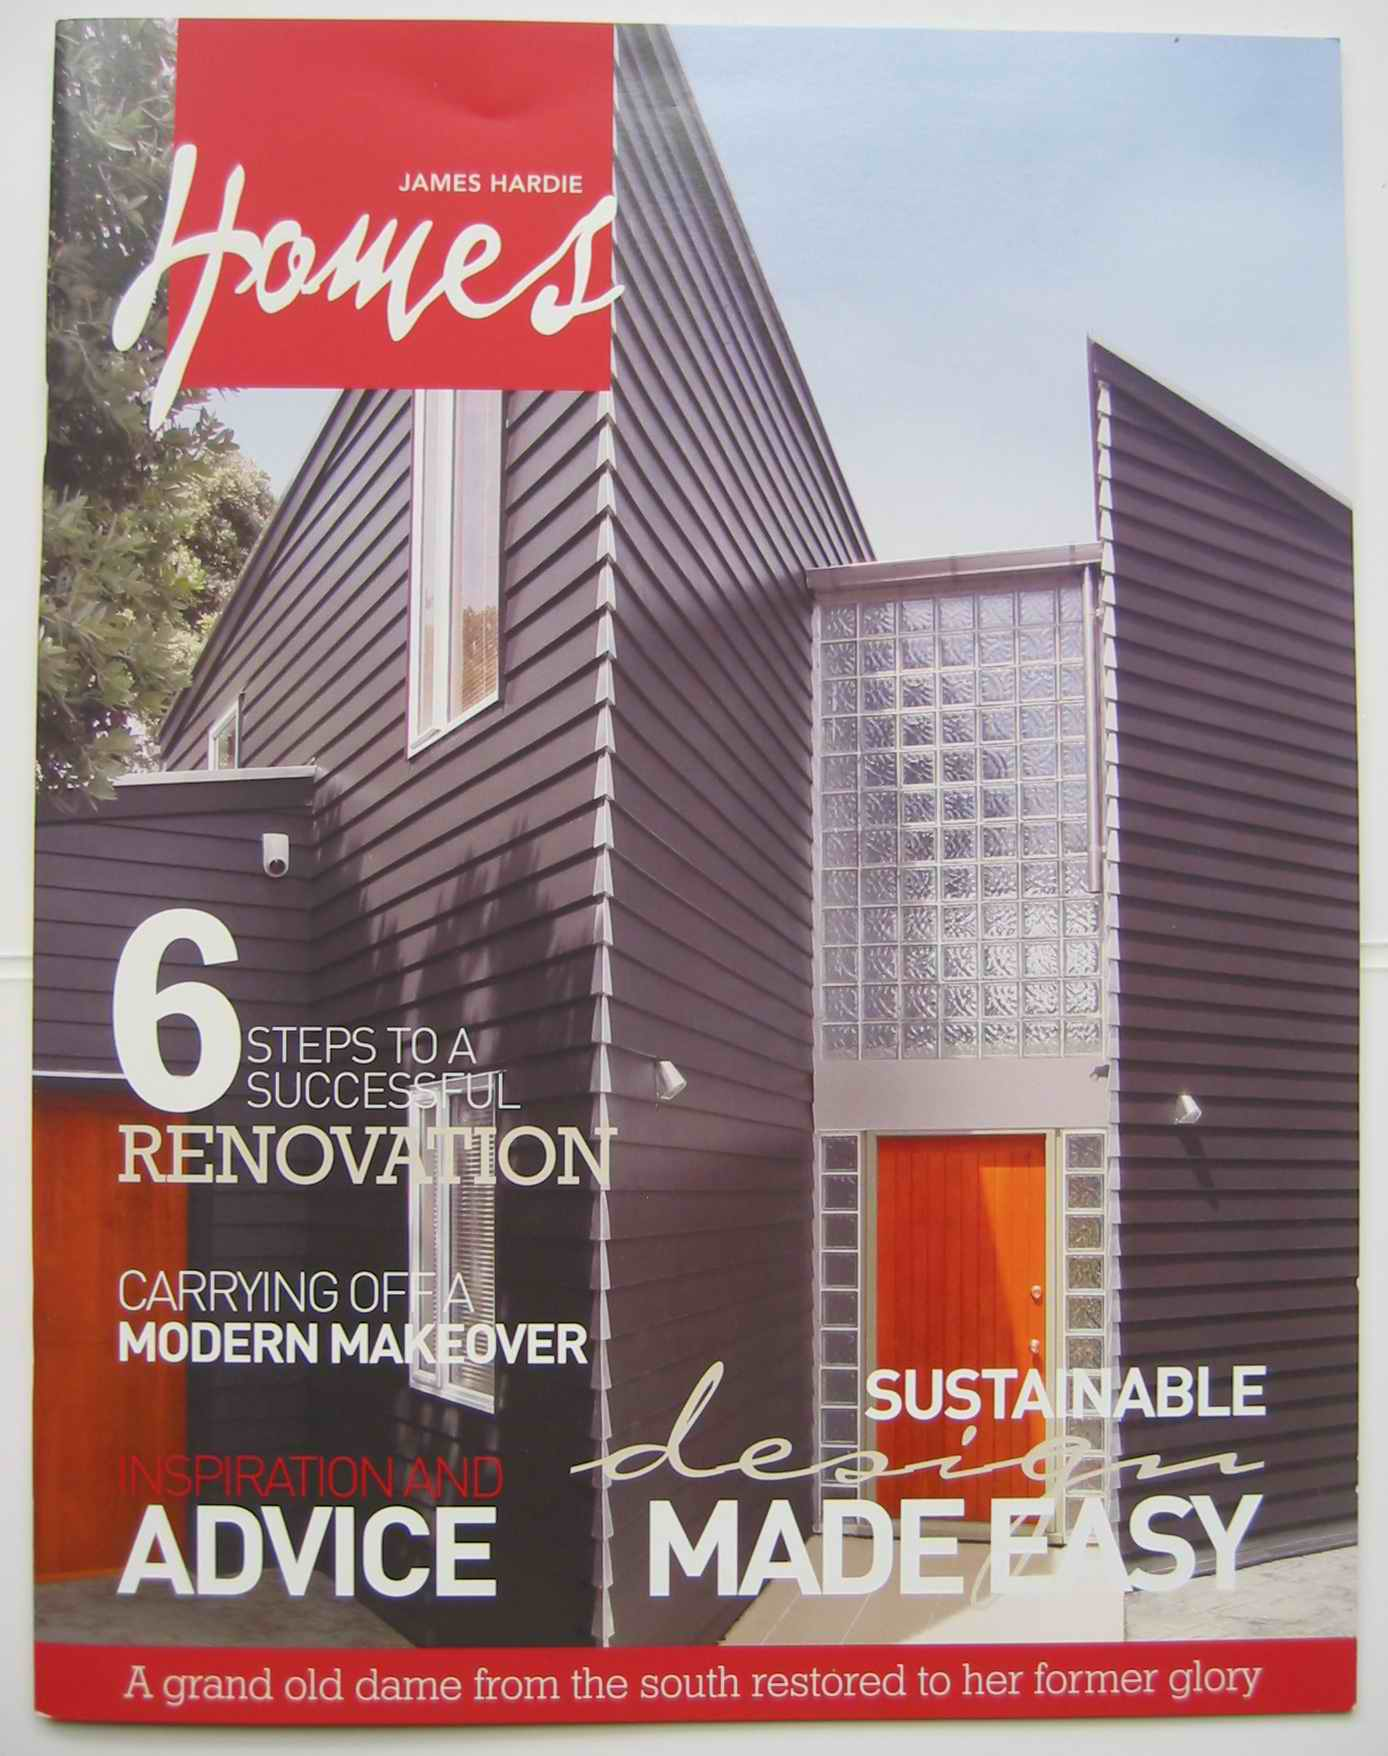 James Hardie consumer magazine